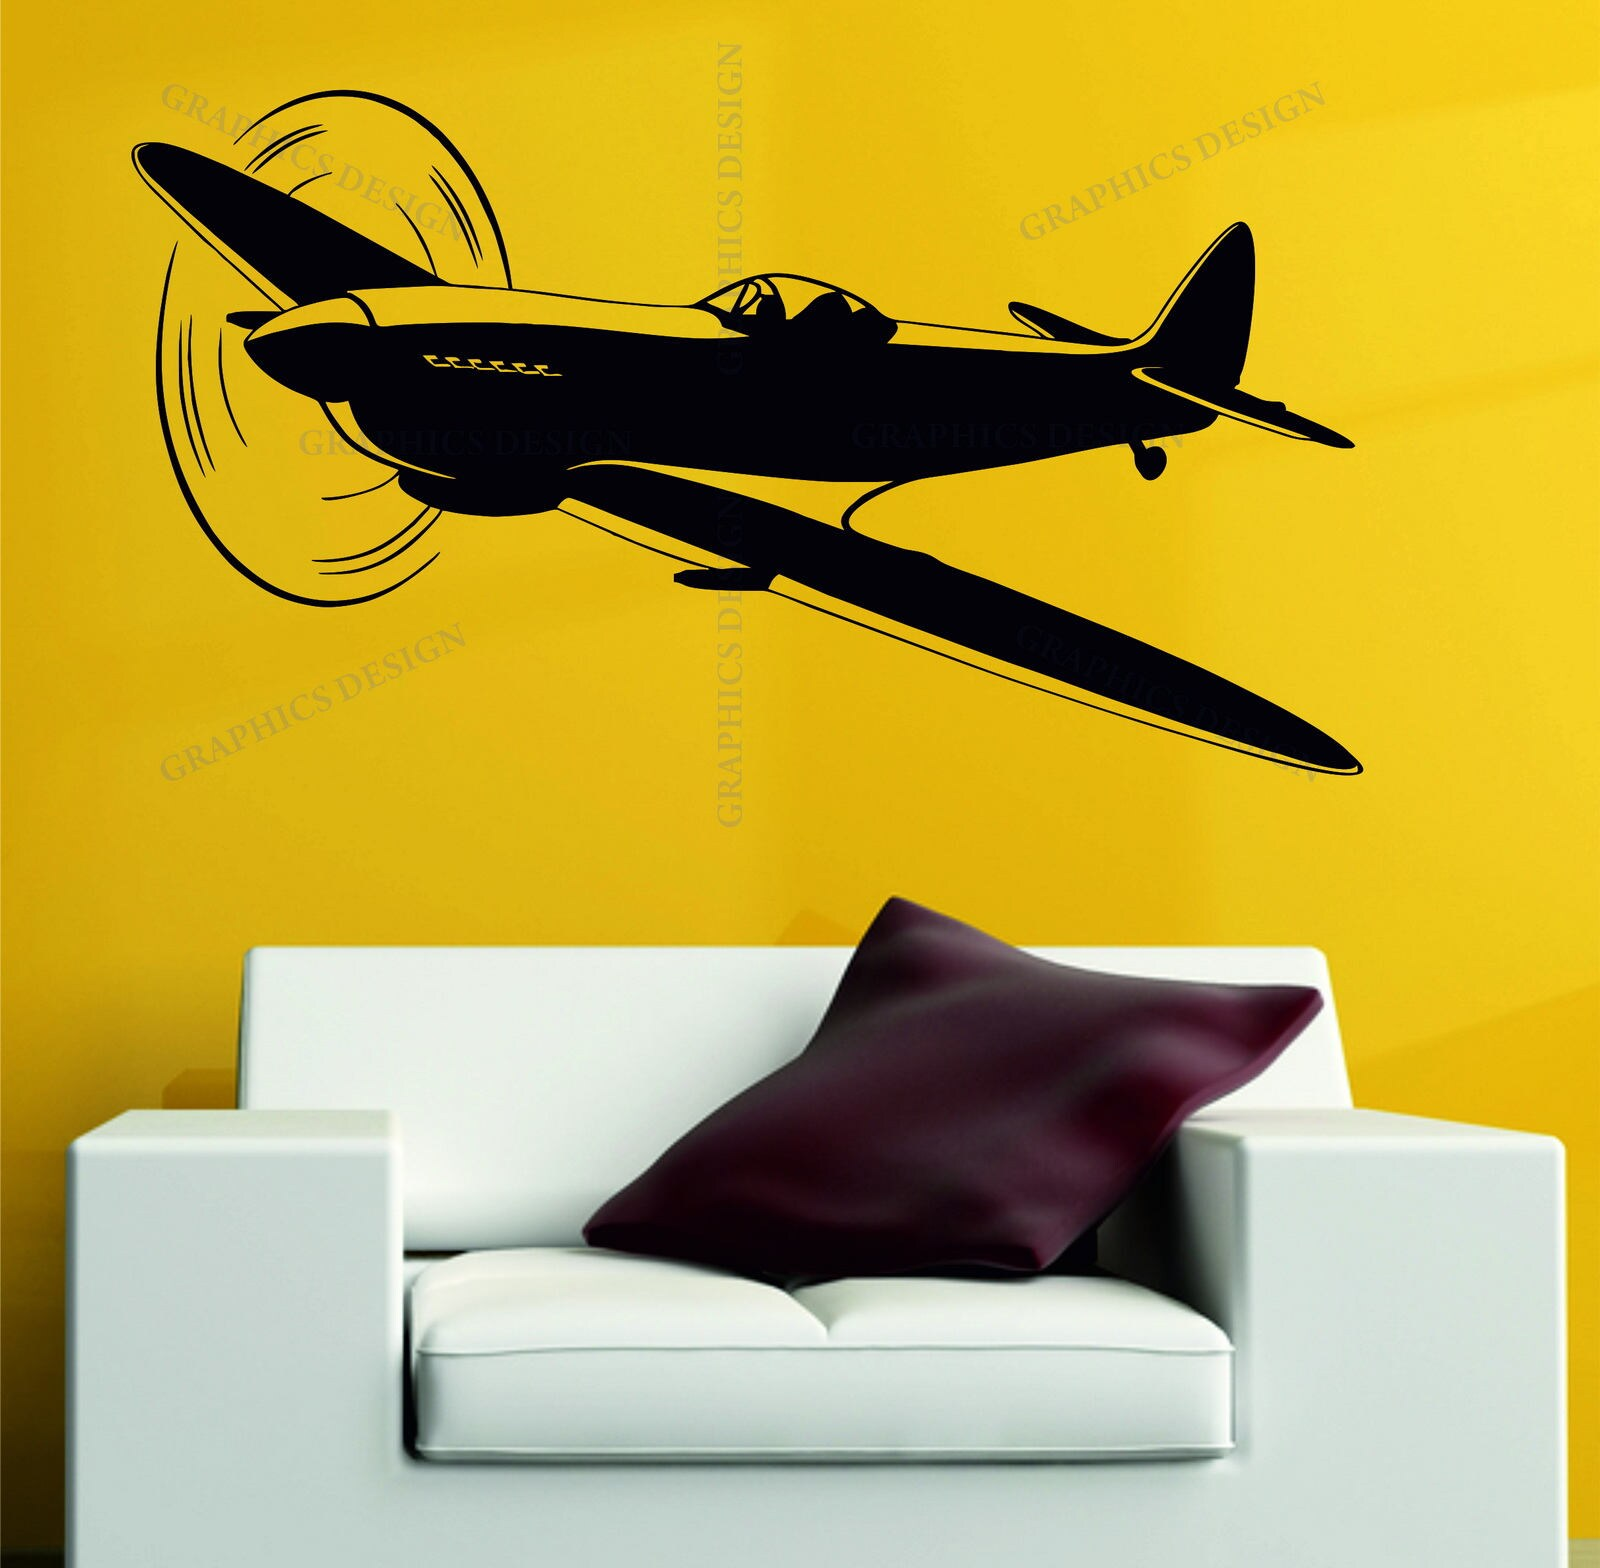 Spitfire Plane Army WW2 RAF Airoplane Military Aviation Plane Decor ...